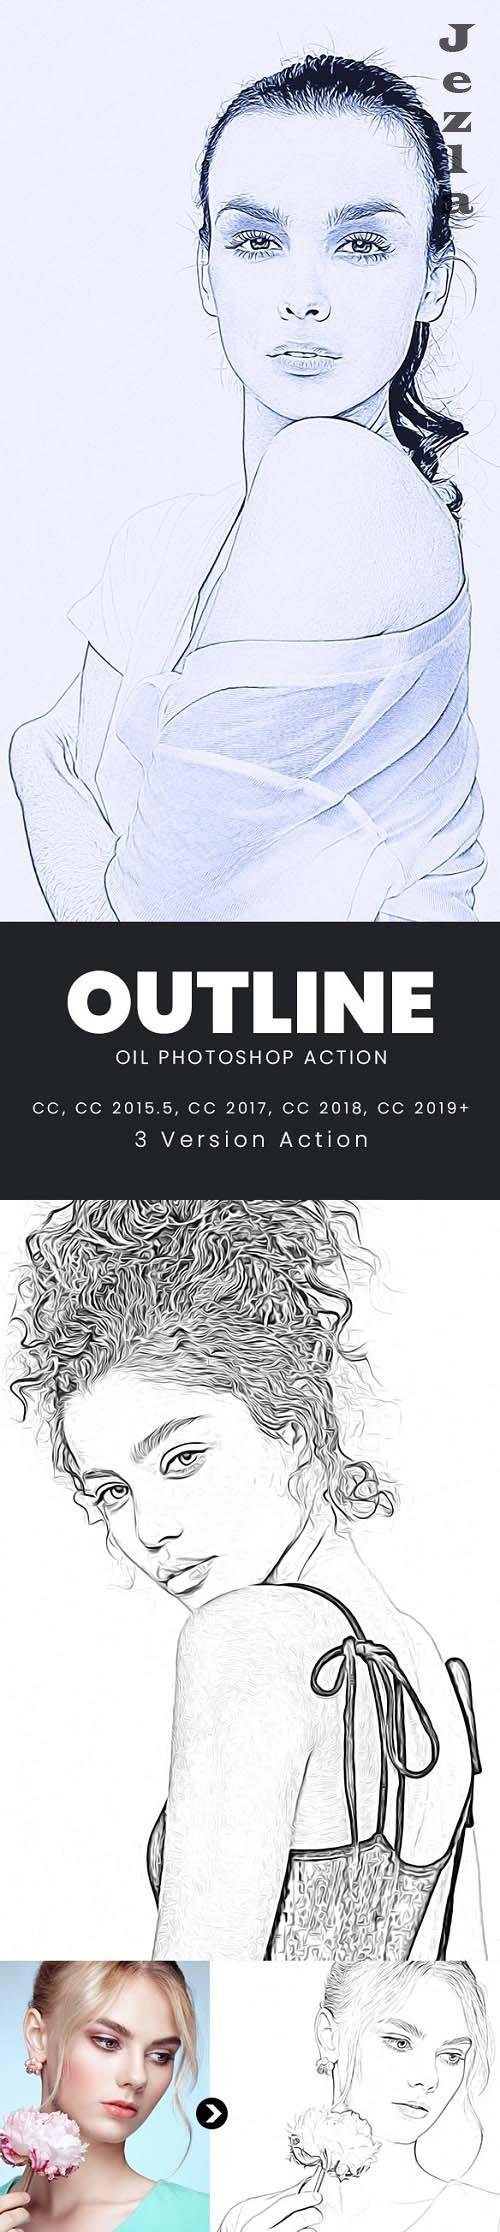 Outline Oil Photoshop Action - 33052588